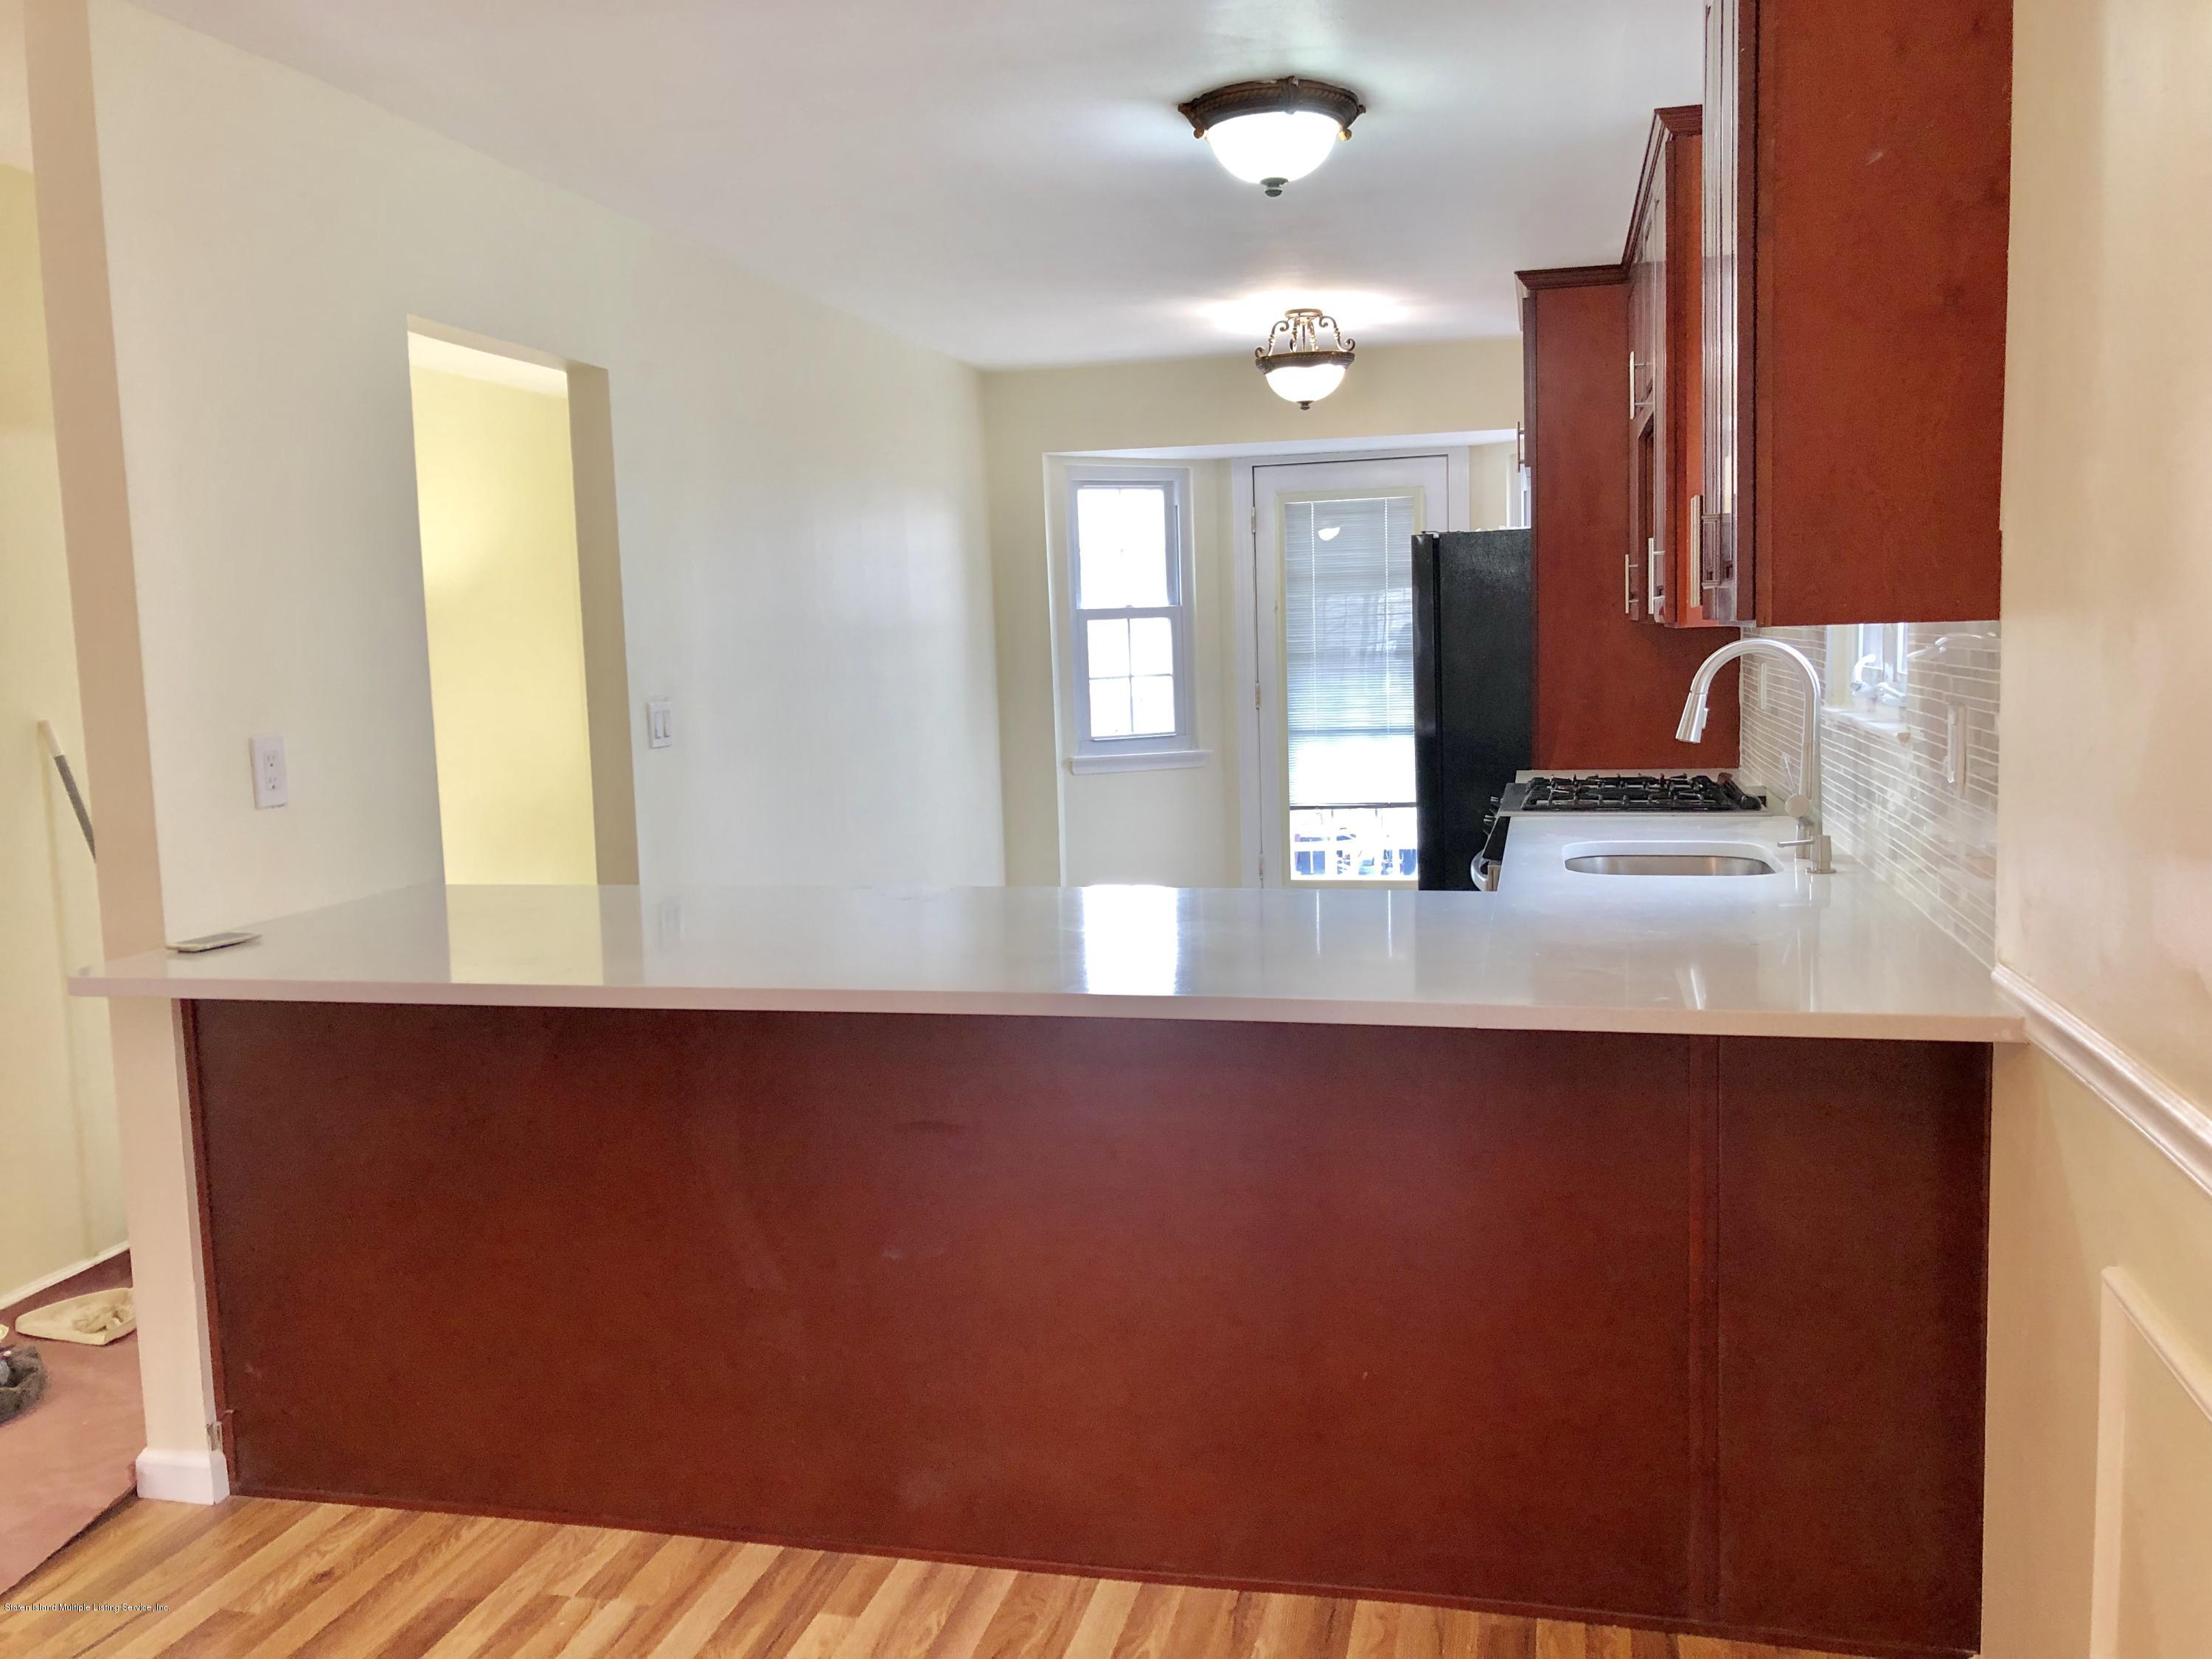 Single Family - Semi-Attached 205 Mcveigh Avenue  Staten Island, NY 10314, MLS-1123847-5